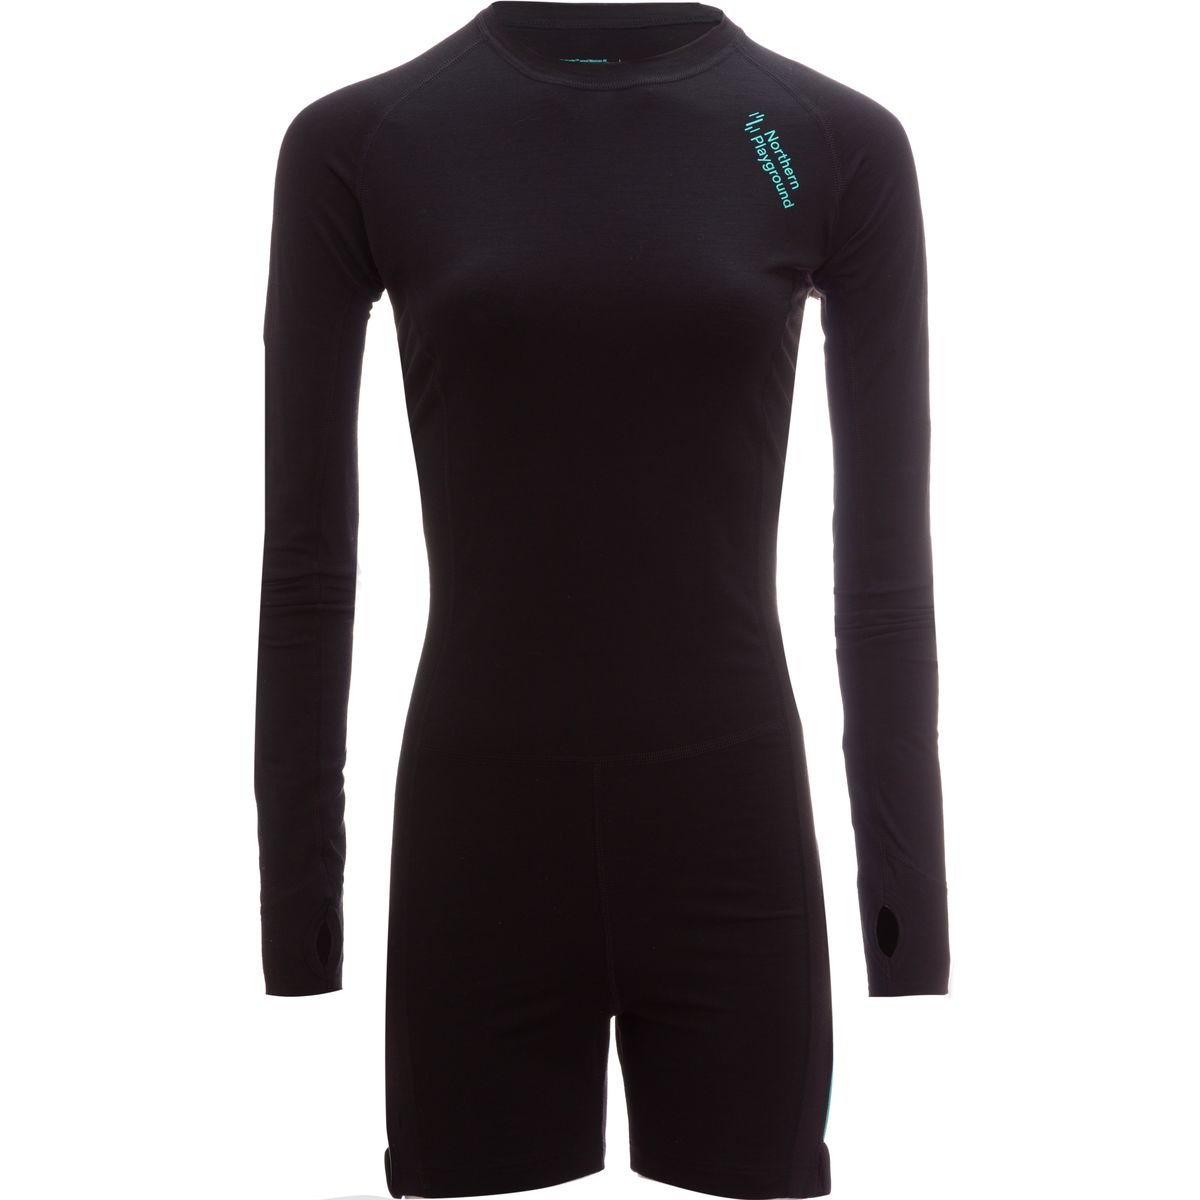 Northern Playground Zipbody Wool One-Piece Baselayer - Women's Black, L by Northern Playground